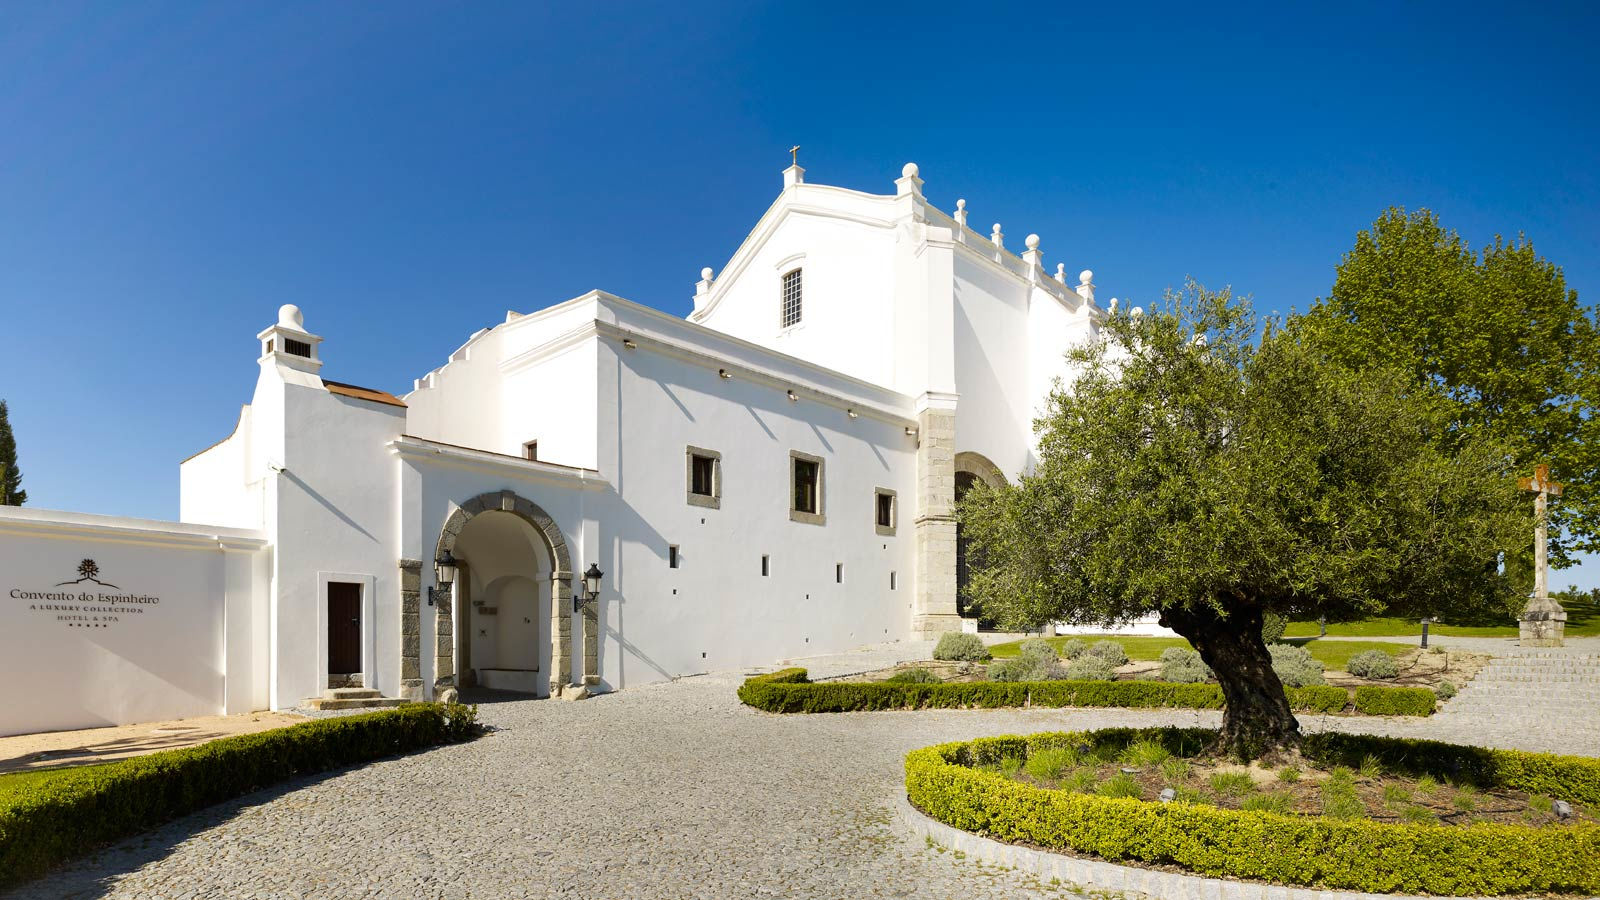 Le Convento do Espinheiro Hotel & Spa, un hôtel de la collection de luxe de Starwood, à Évora